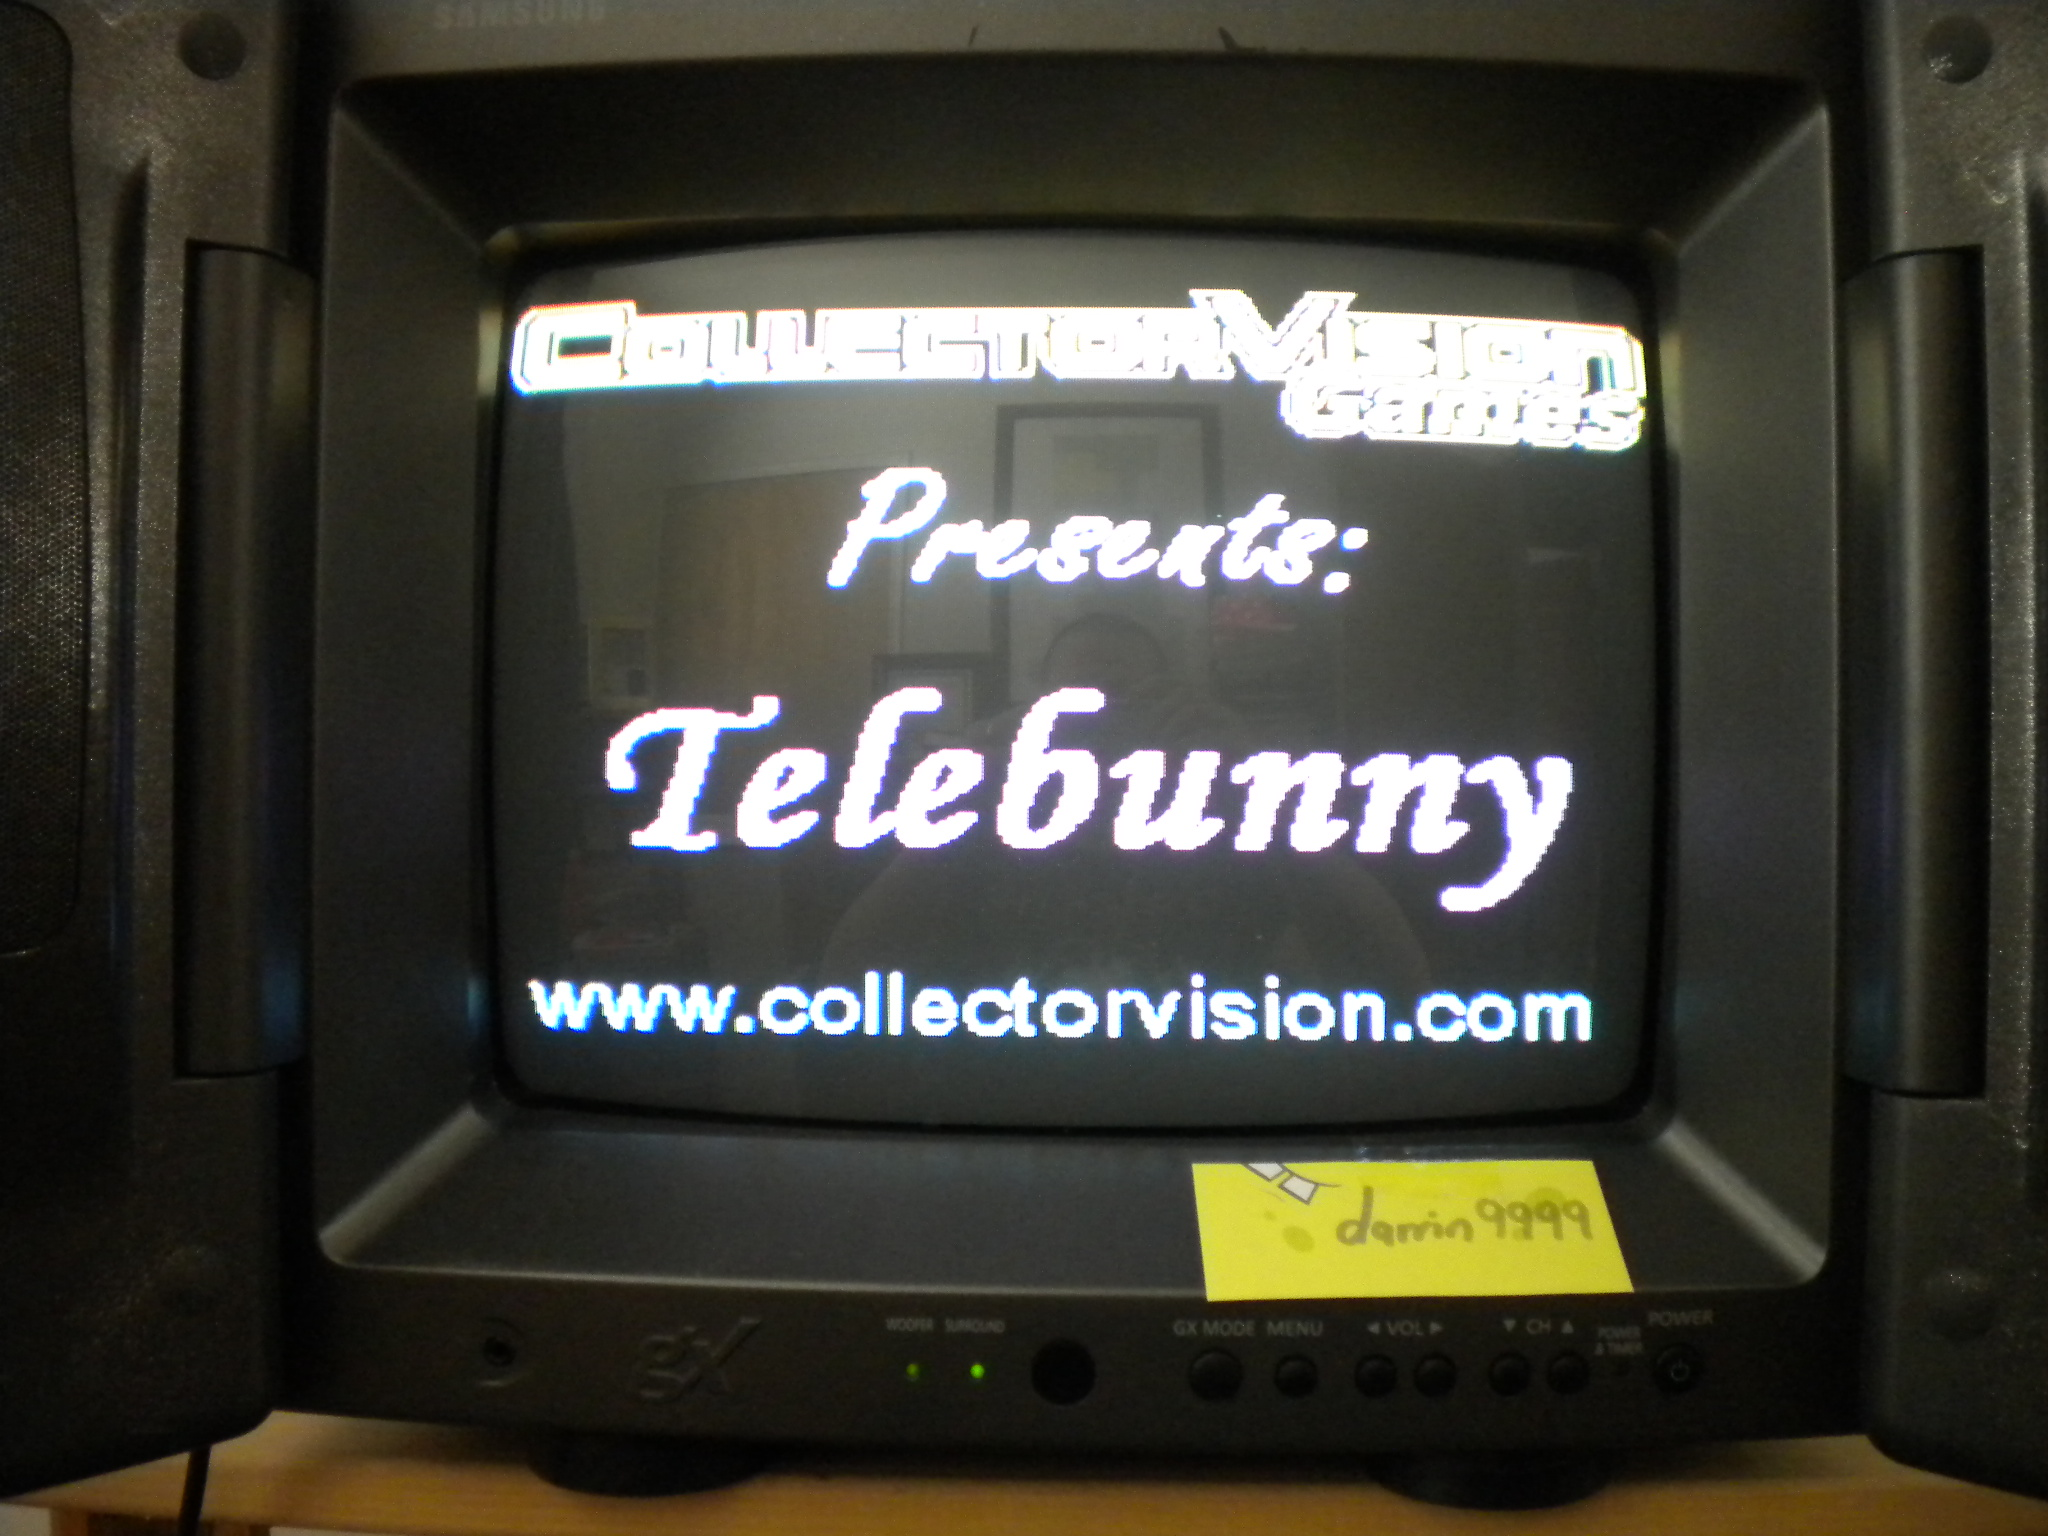 Telebunny [Normal Play] 4,920 points